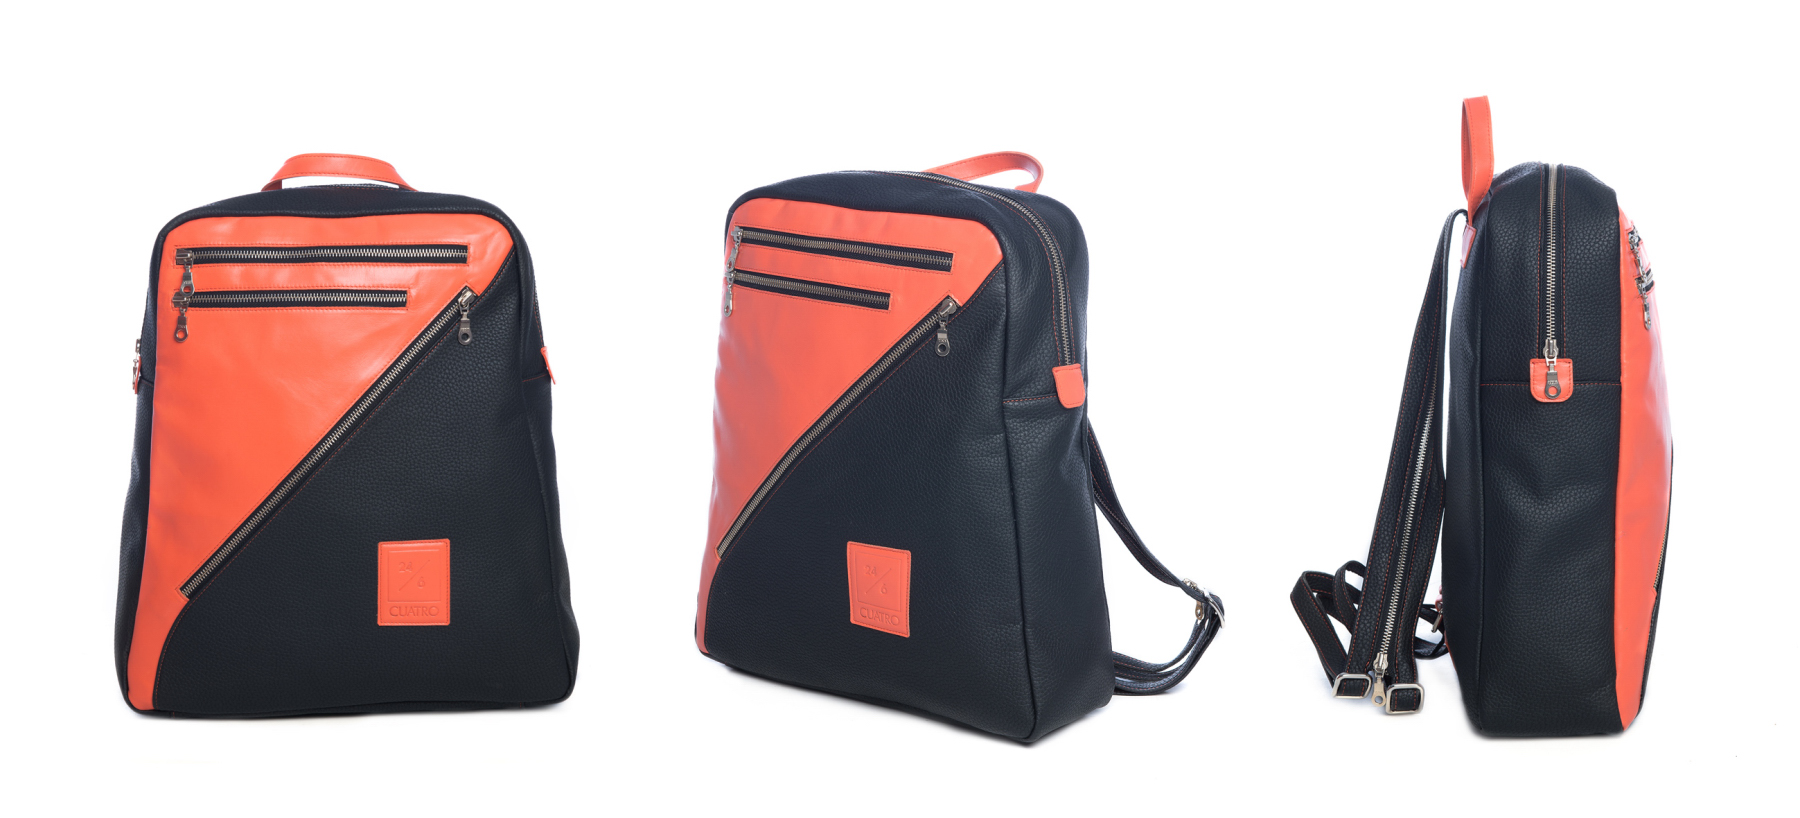 BACKPACK LEATHER CUATROFITNESS